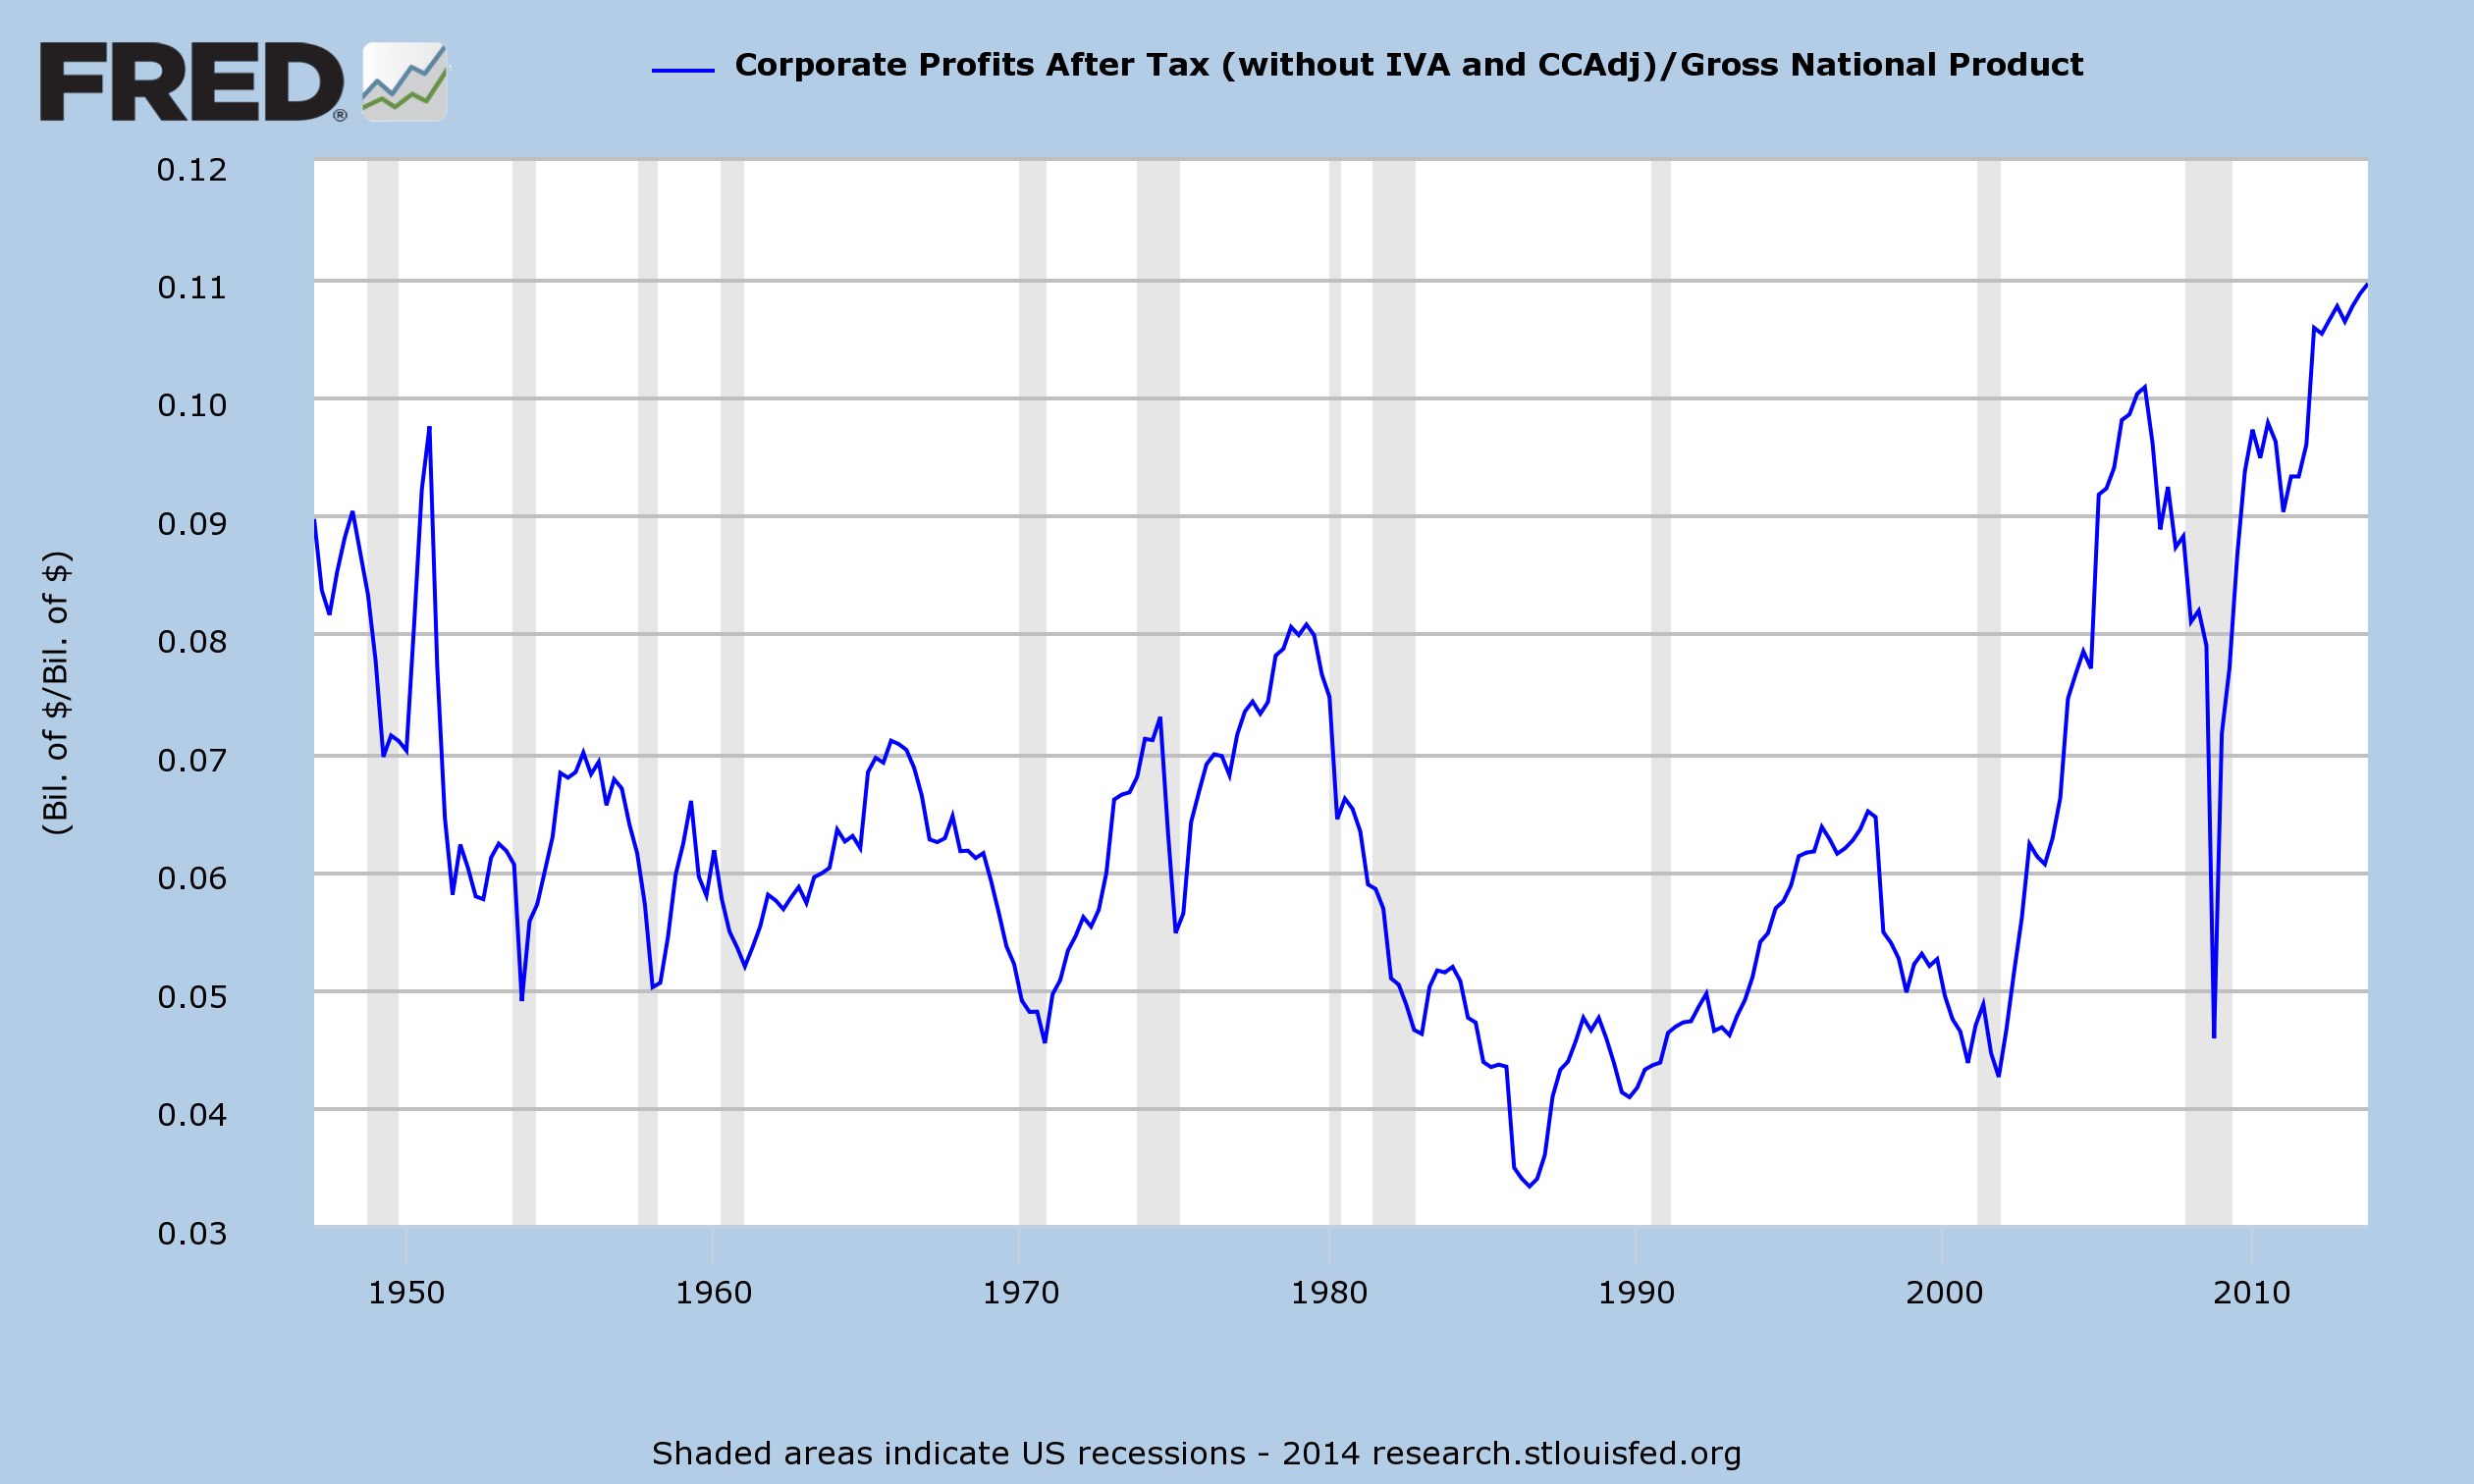 Corporate Profits/GNP